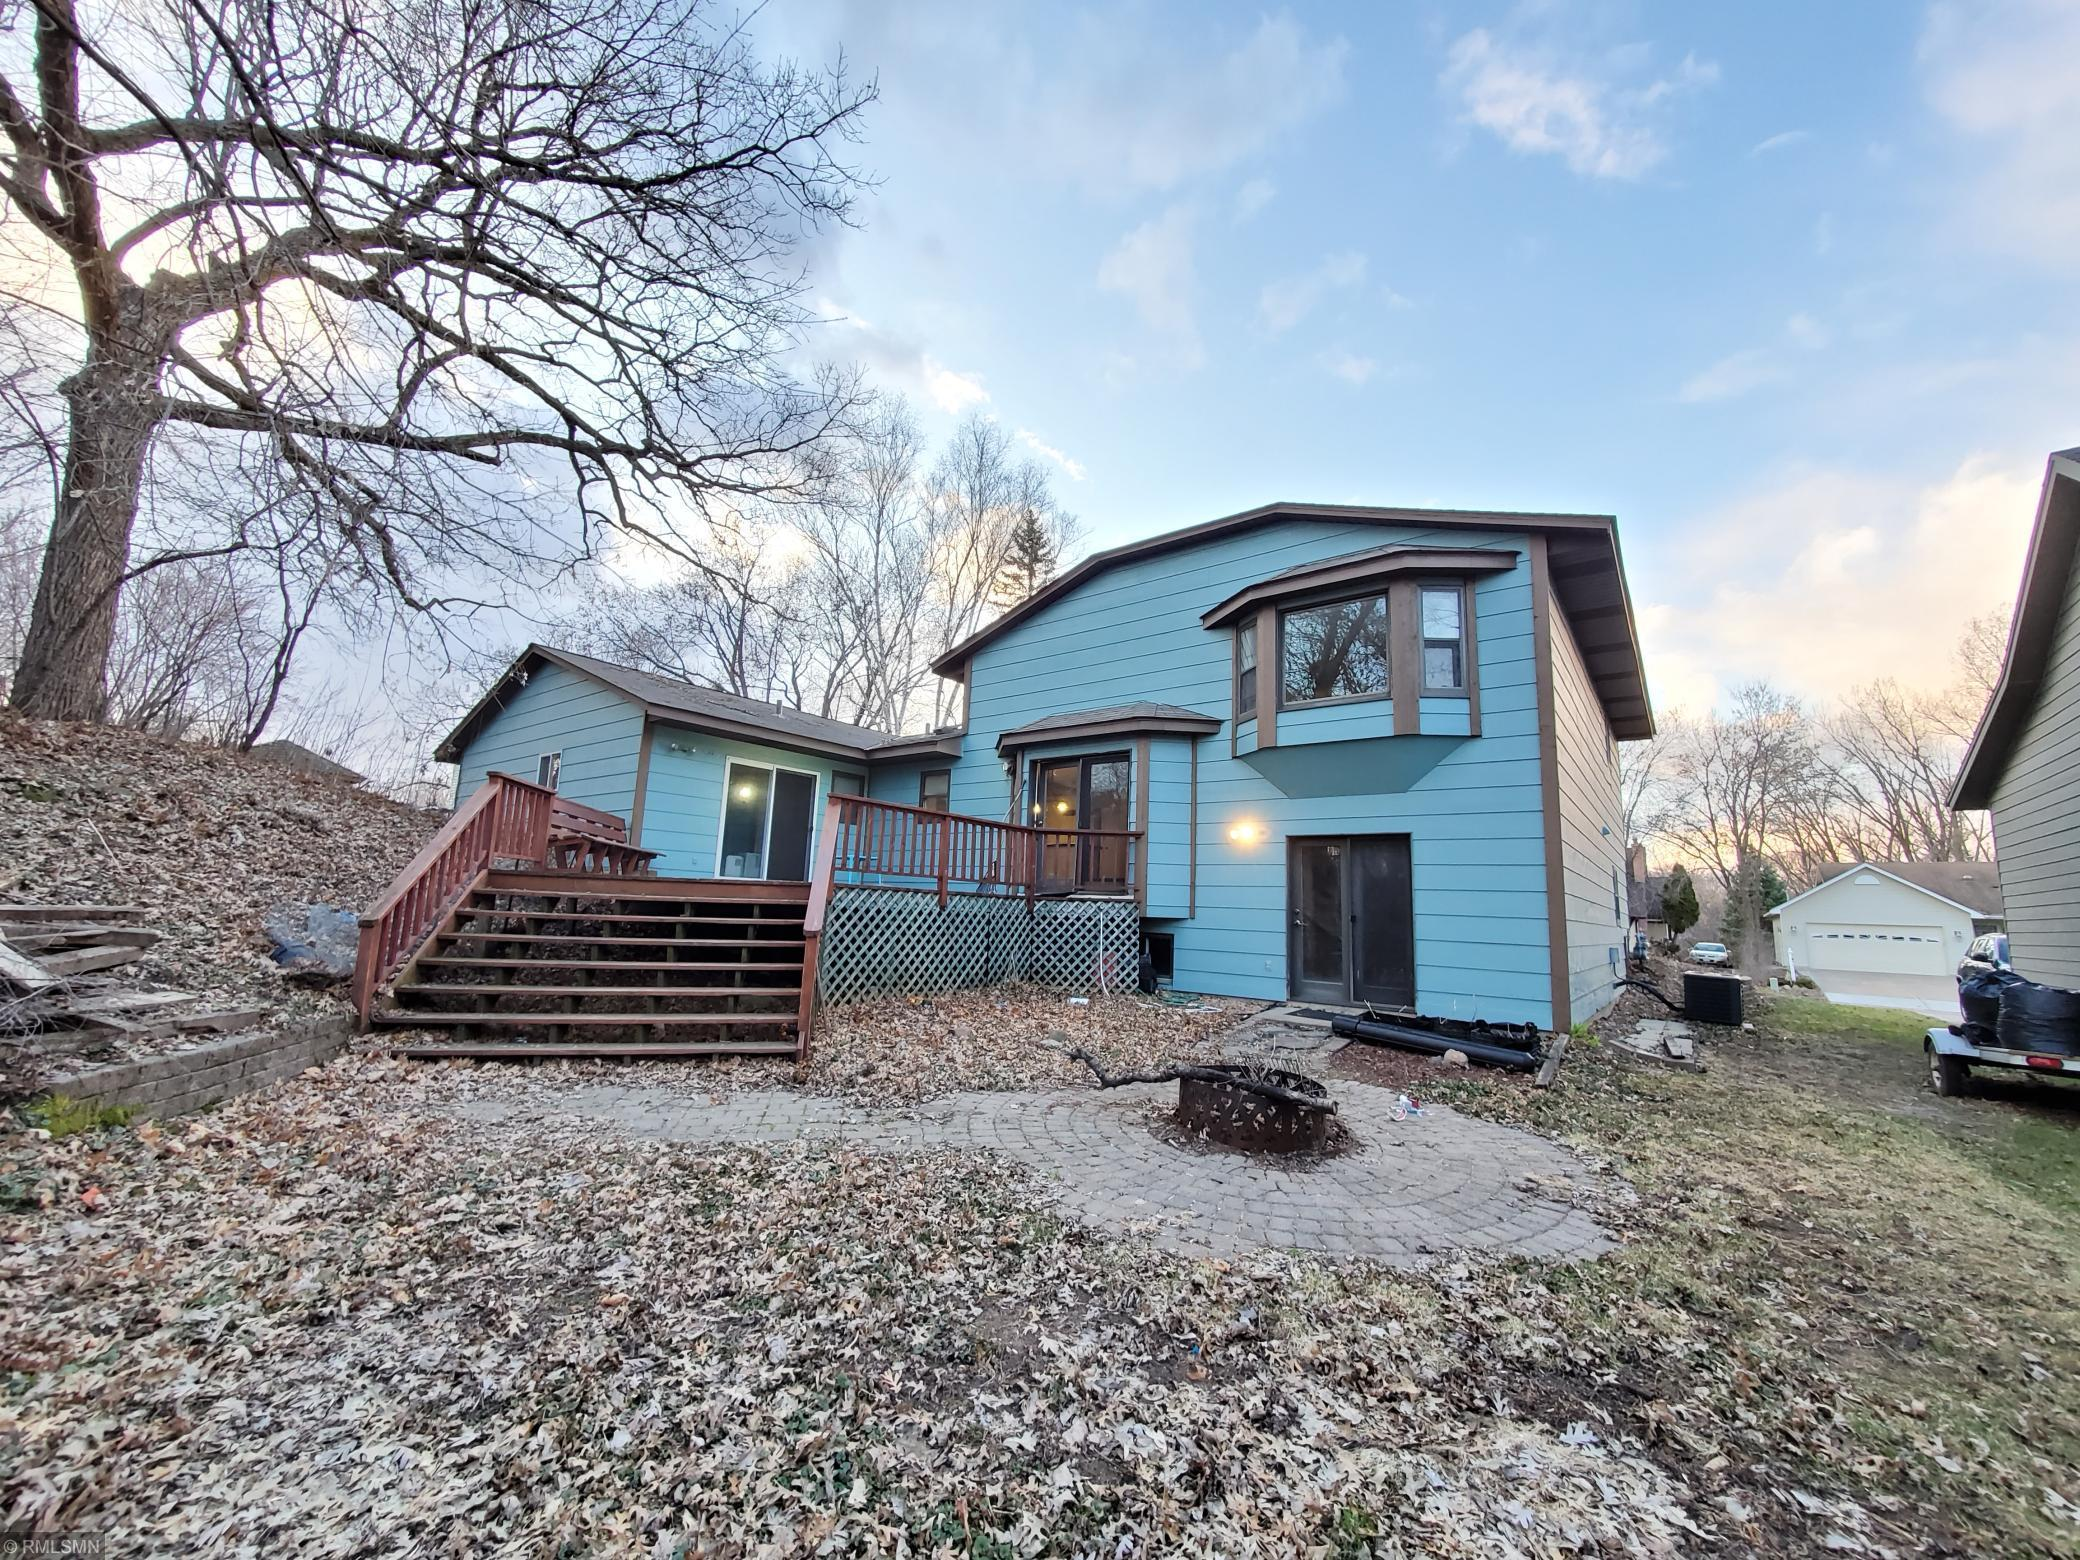 6477 47th N Property Photo - Oakdale, MN real estate listing